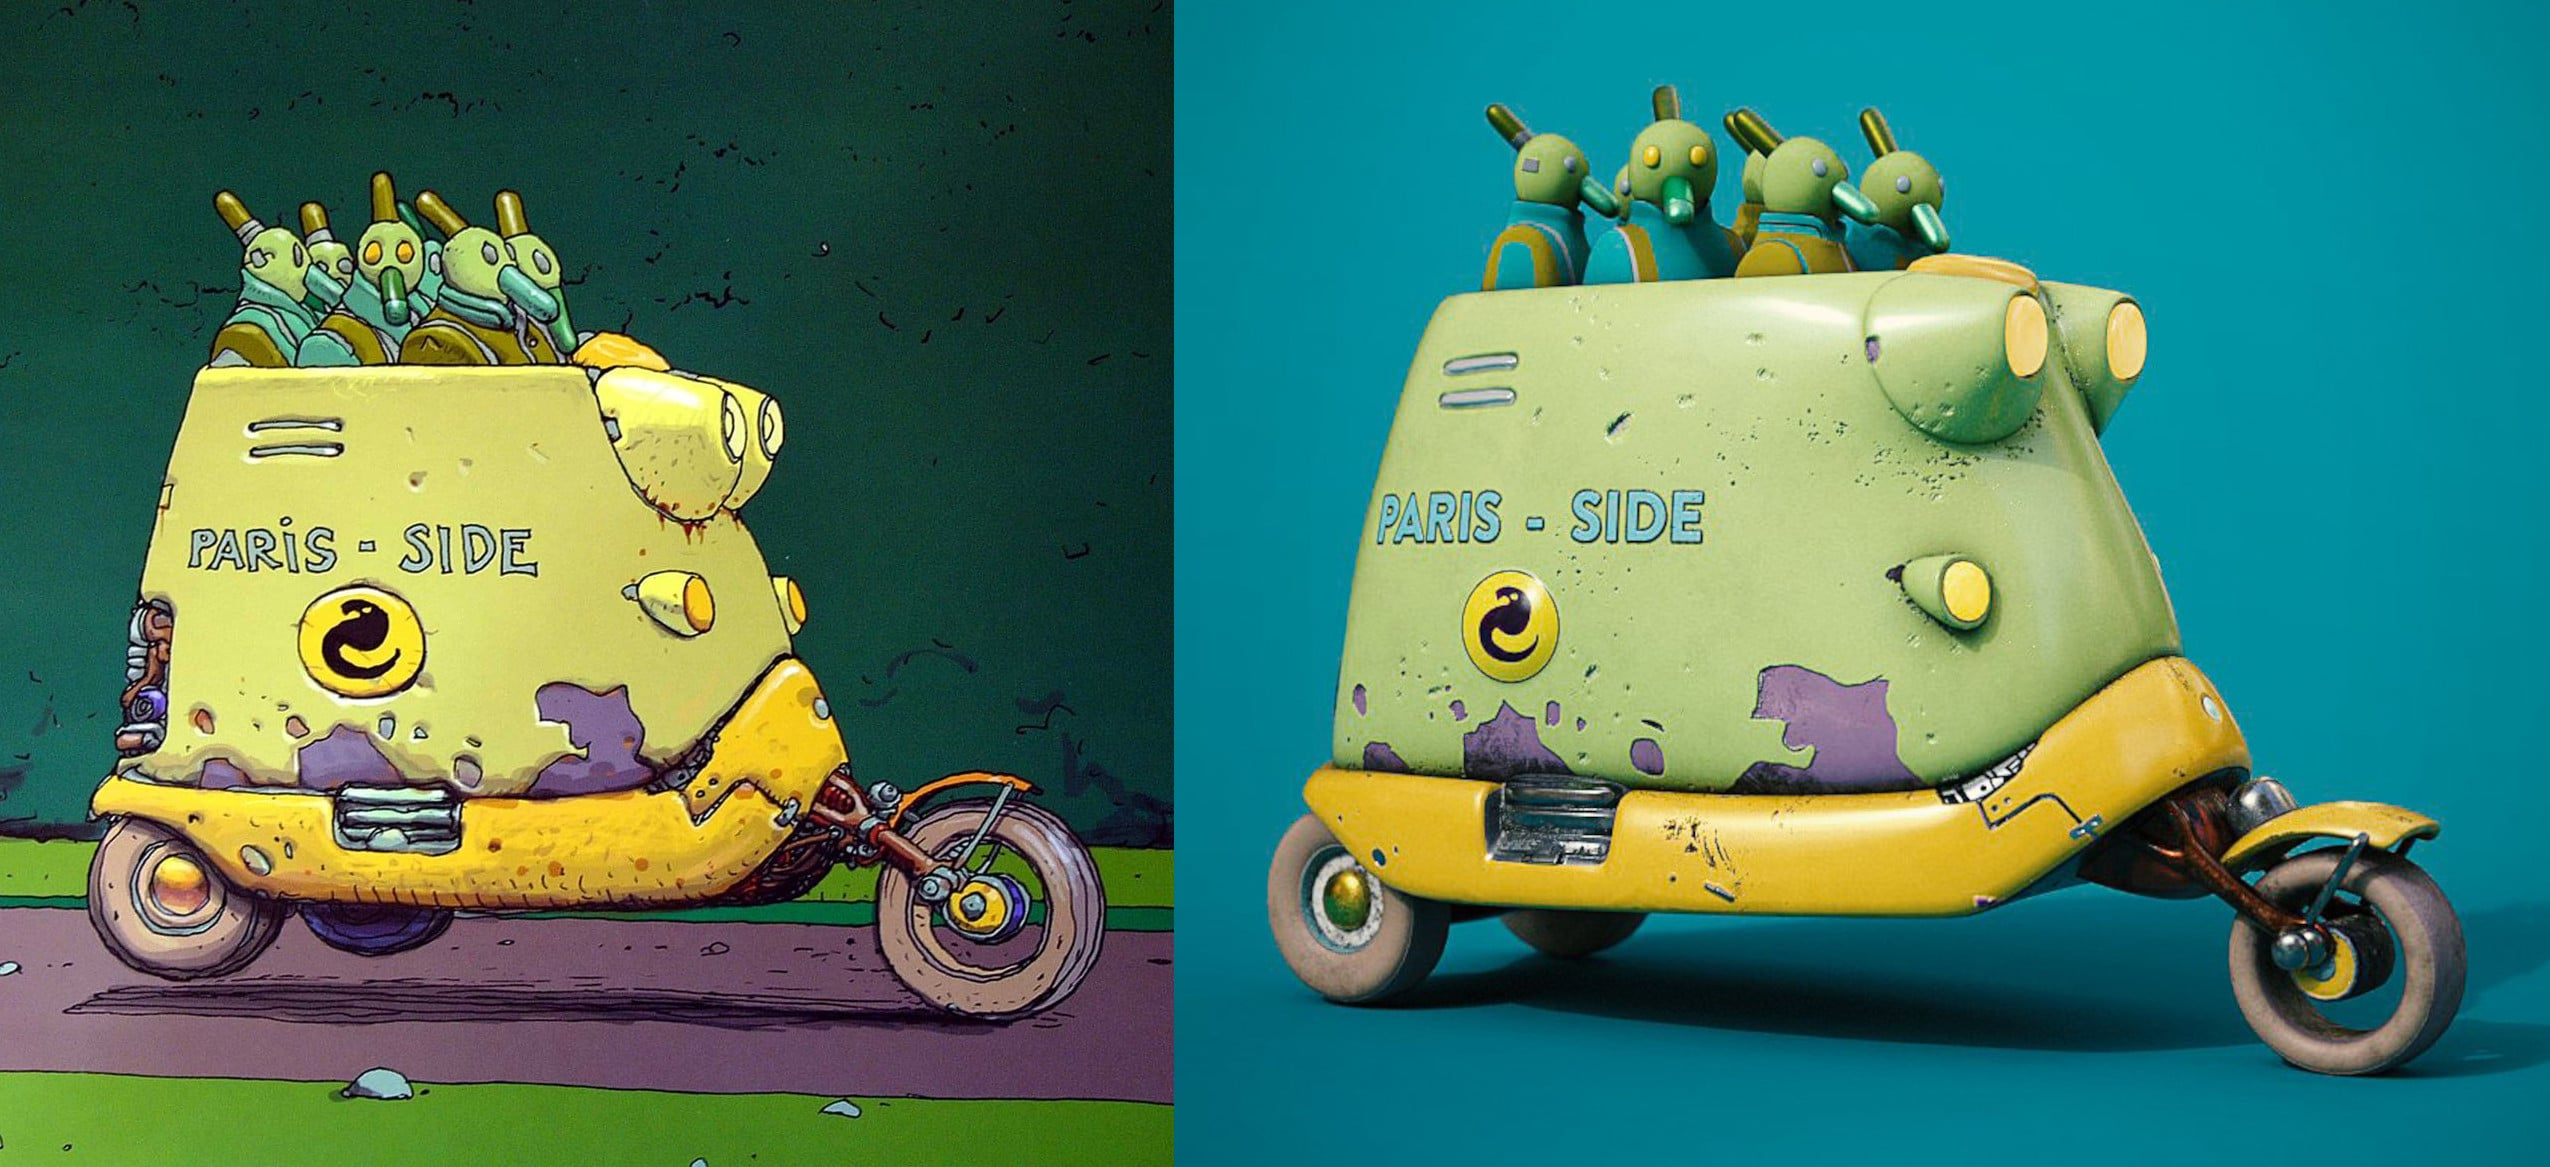 Durk's Moebius vehicle experiment modeled in Gravity Sketch. Image on left shows the original artwork by Jean Giraud.